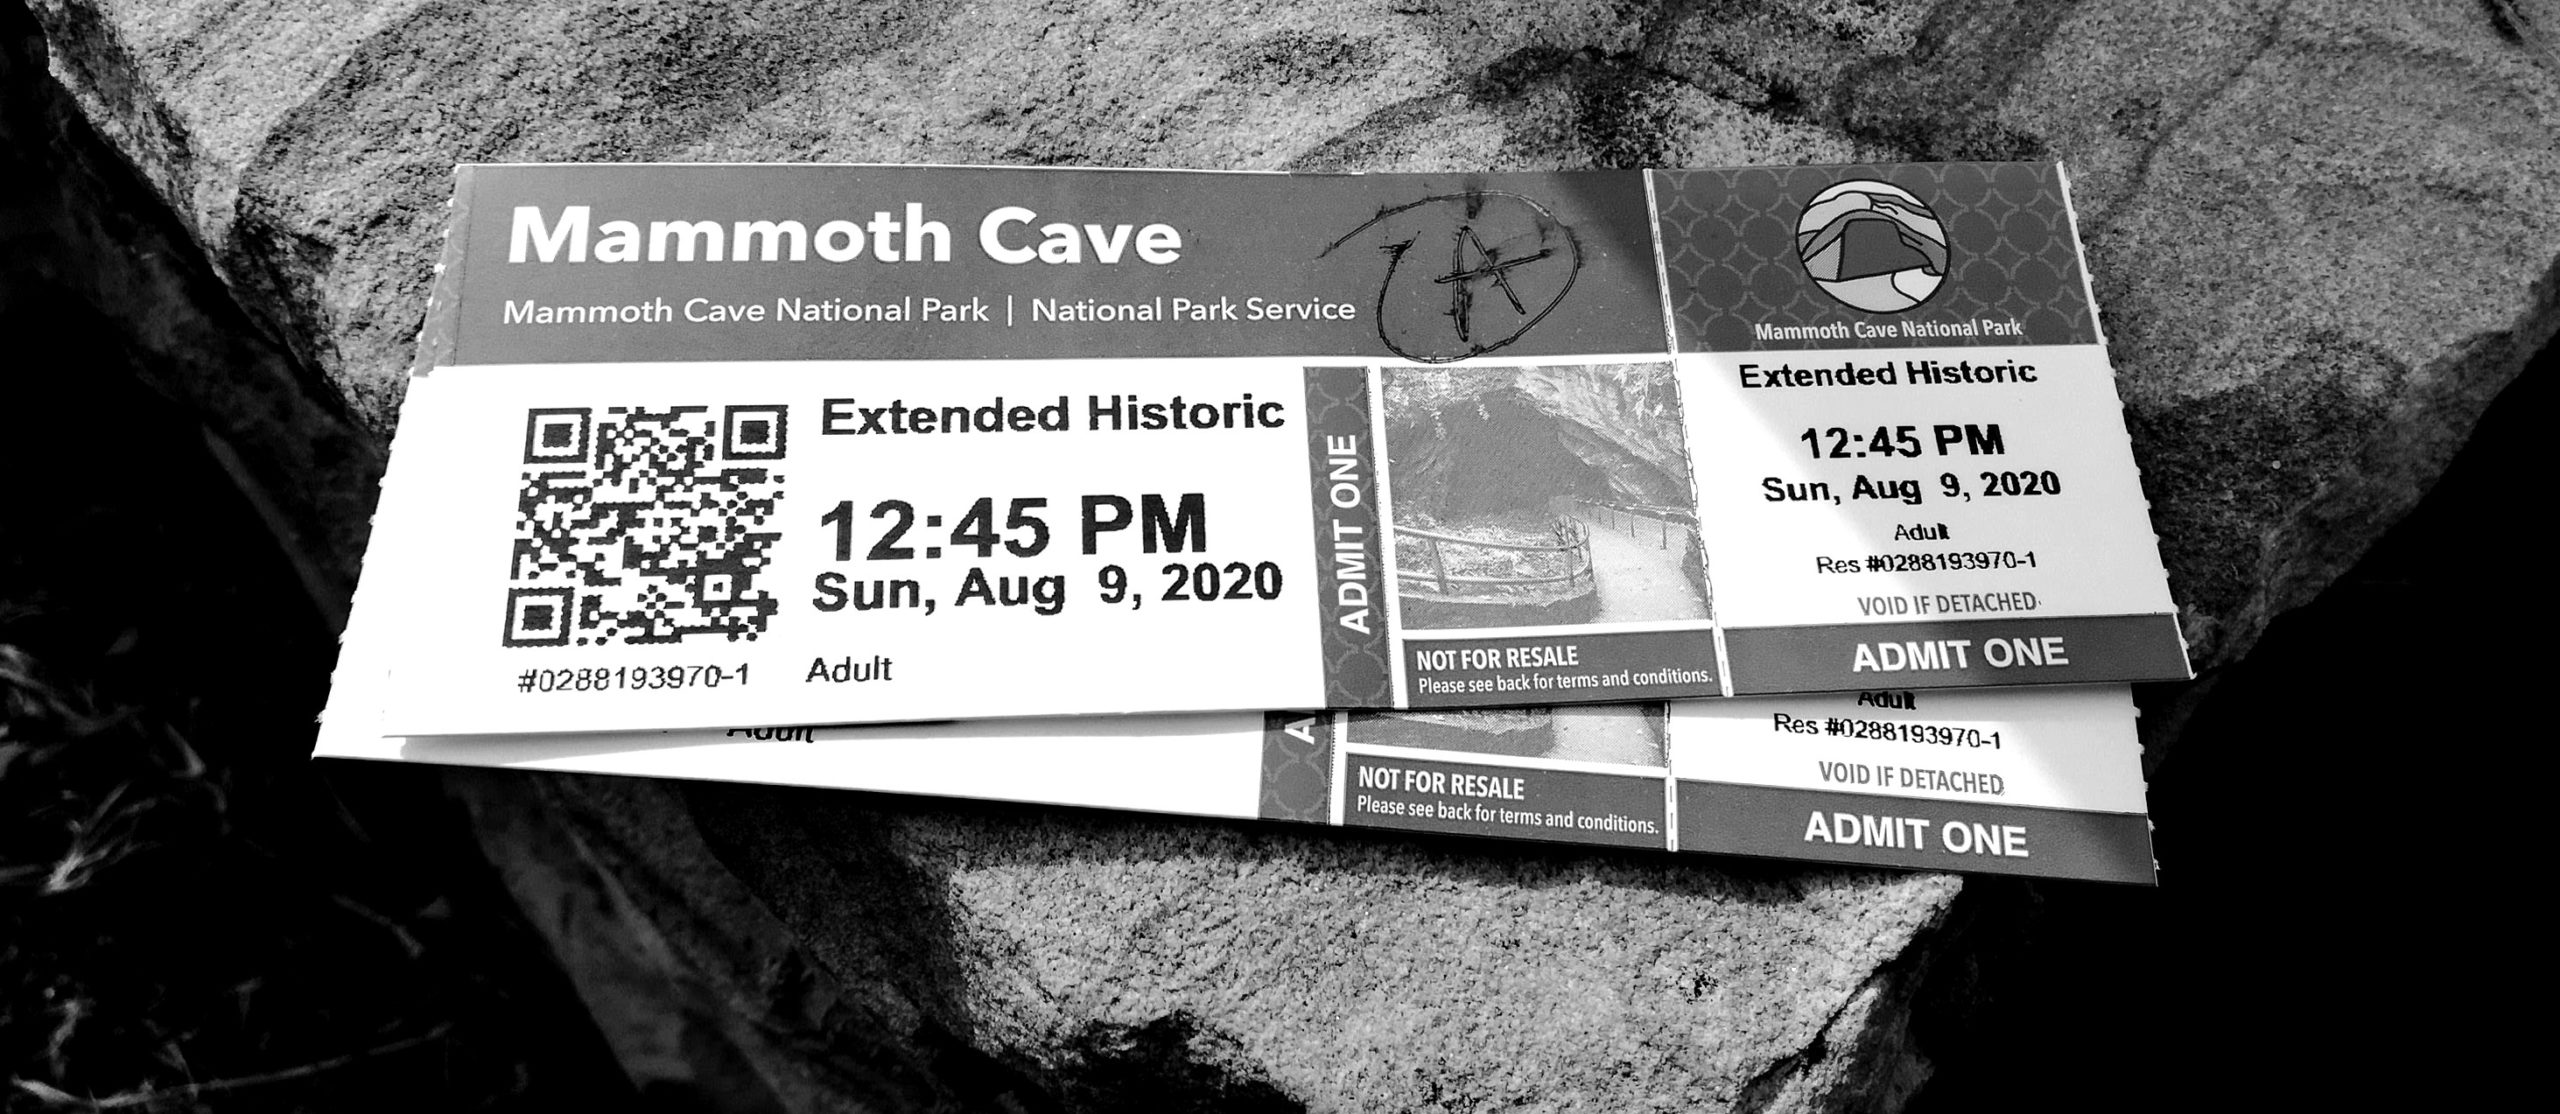 Mammoth Cave Tour Photos Tickets Kentucky